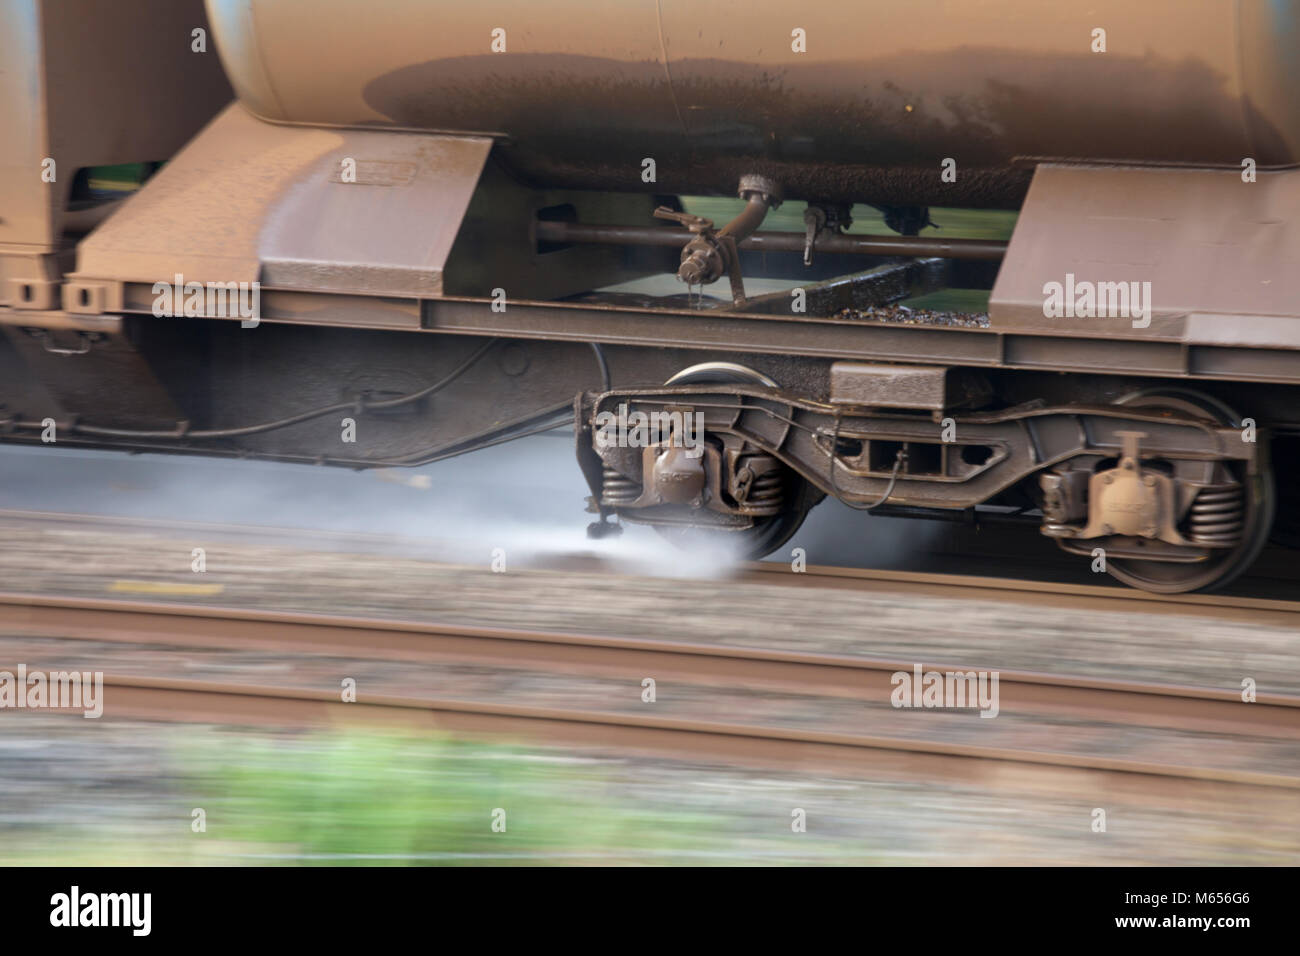 WATER JET SPRAYING FROM A NETWORK RAIL RAILHEAD TREATMENT TRAIN (WATER CANNON)  WASHING LEAF MULCH FROM THE SLIPPERY - Stock Image